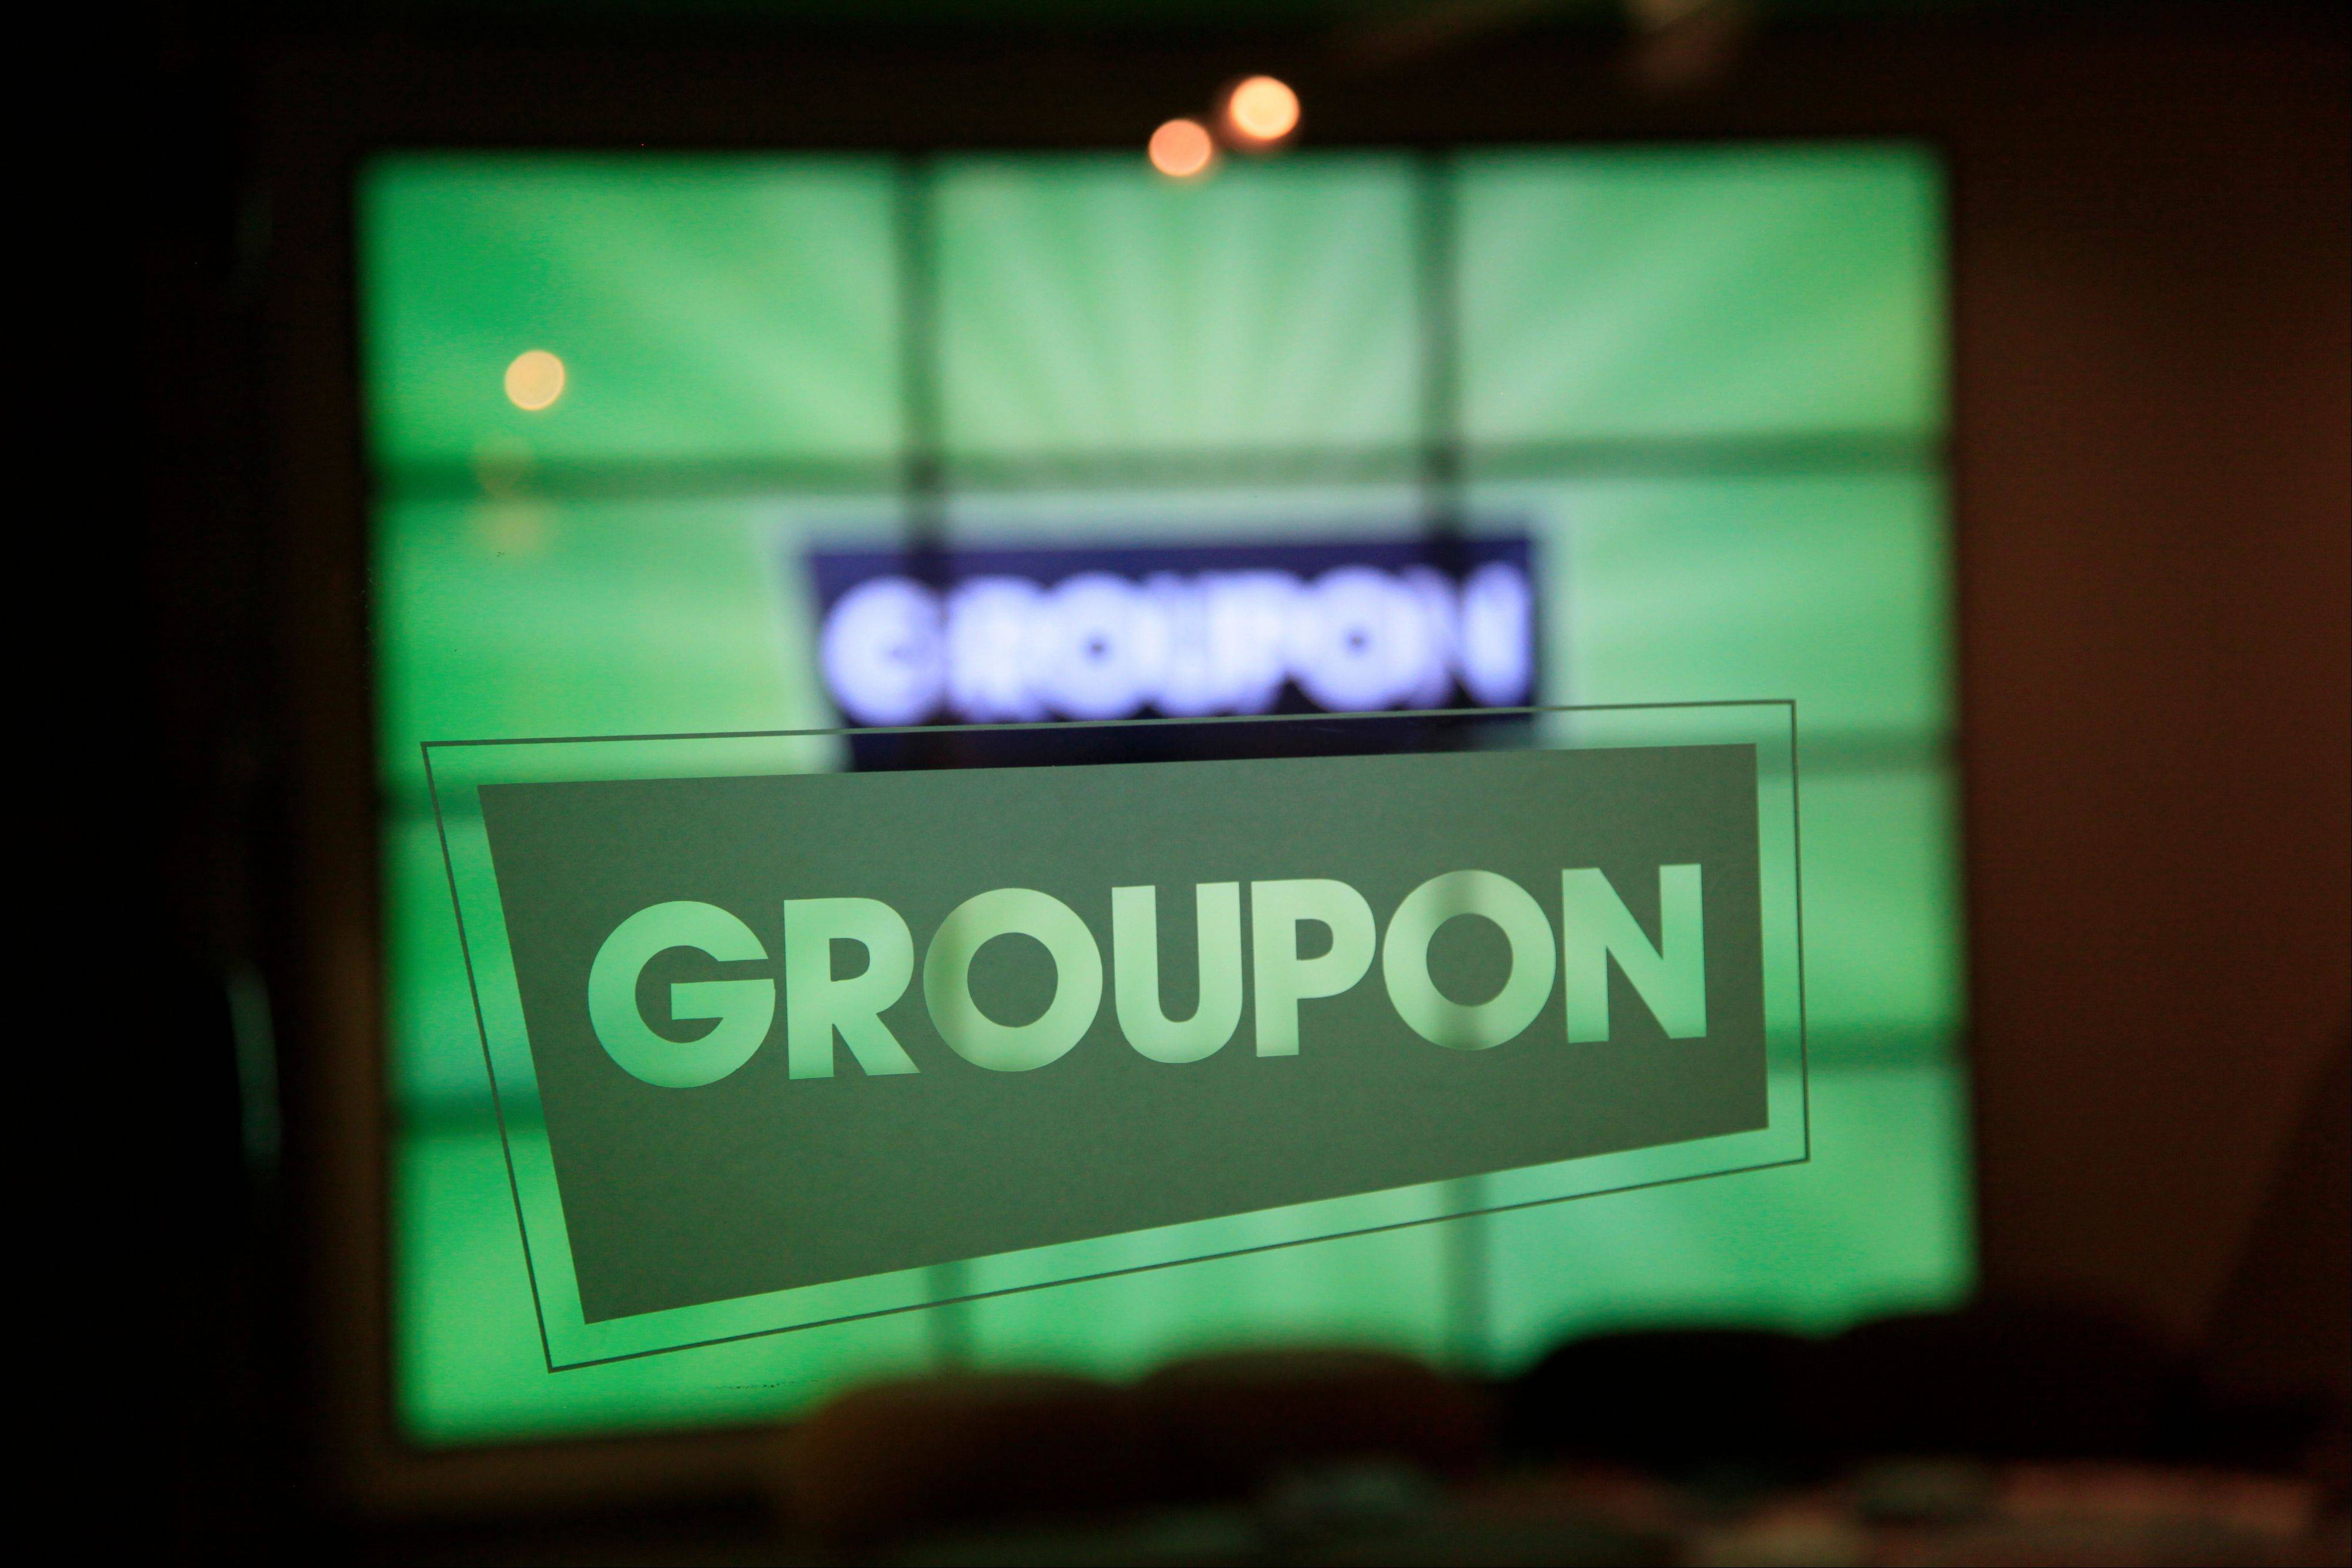 The Groupon logo etched in glass in the lobby of the online coupon company's Chicago offices Thursday, Sept. 22, 2011. Online coupon seller Groupon Inc. is discounting its expectations for its first stock offering, reported Friday, Oct. 21, 2011. The company, which offers consumers daily discounts targeted to their city and preferences, now expects net proceeds of about $478.8 million from its initial public offering of 30 million shares.